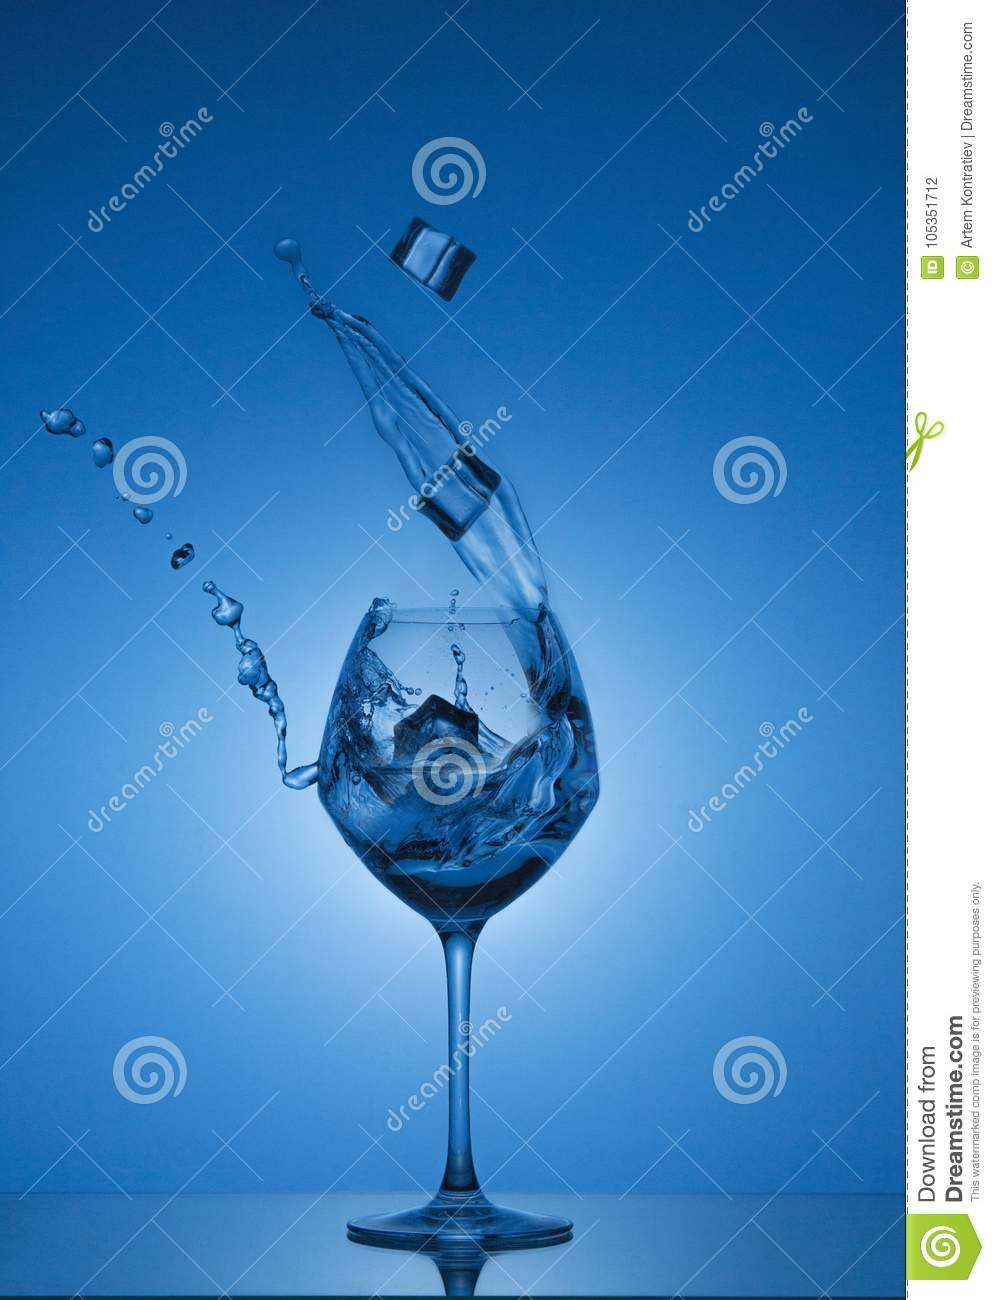 Ice cubes fall into a glass and water is poured out. Water splashing out of a tall wine glass.